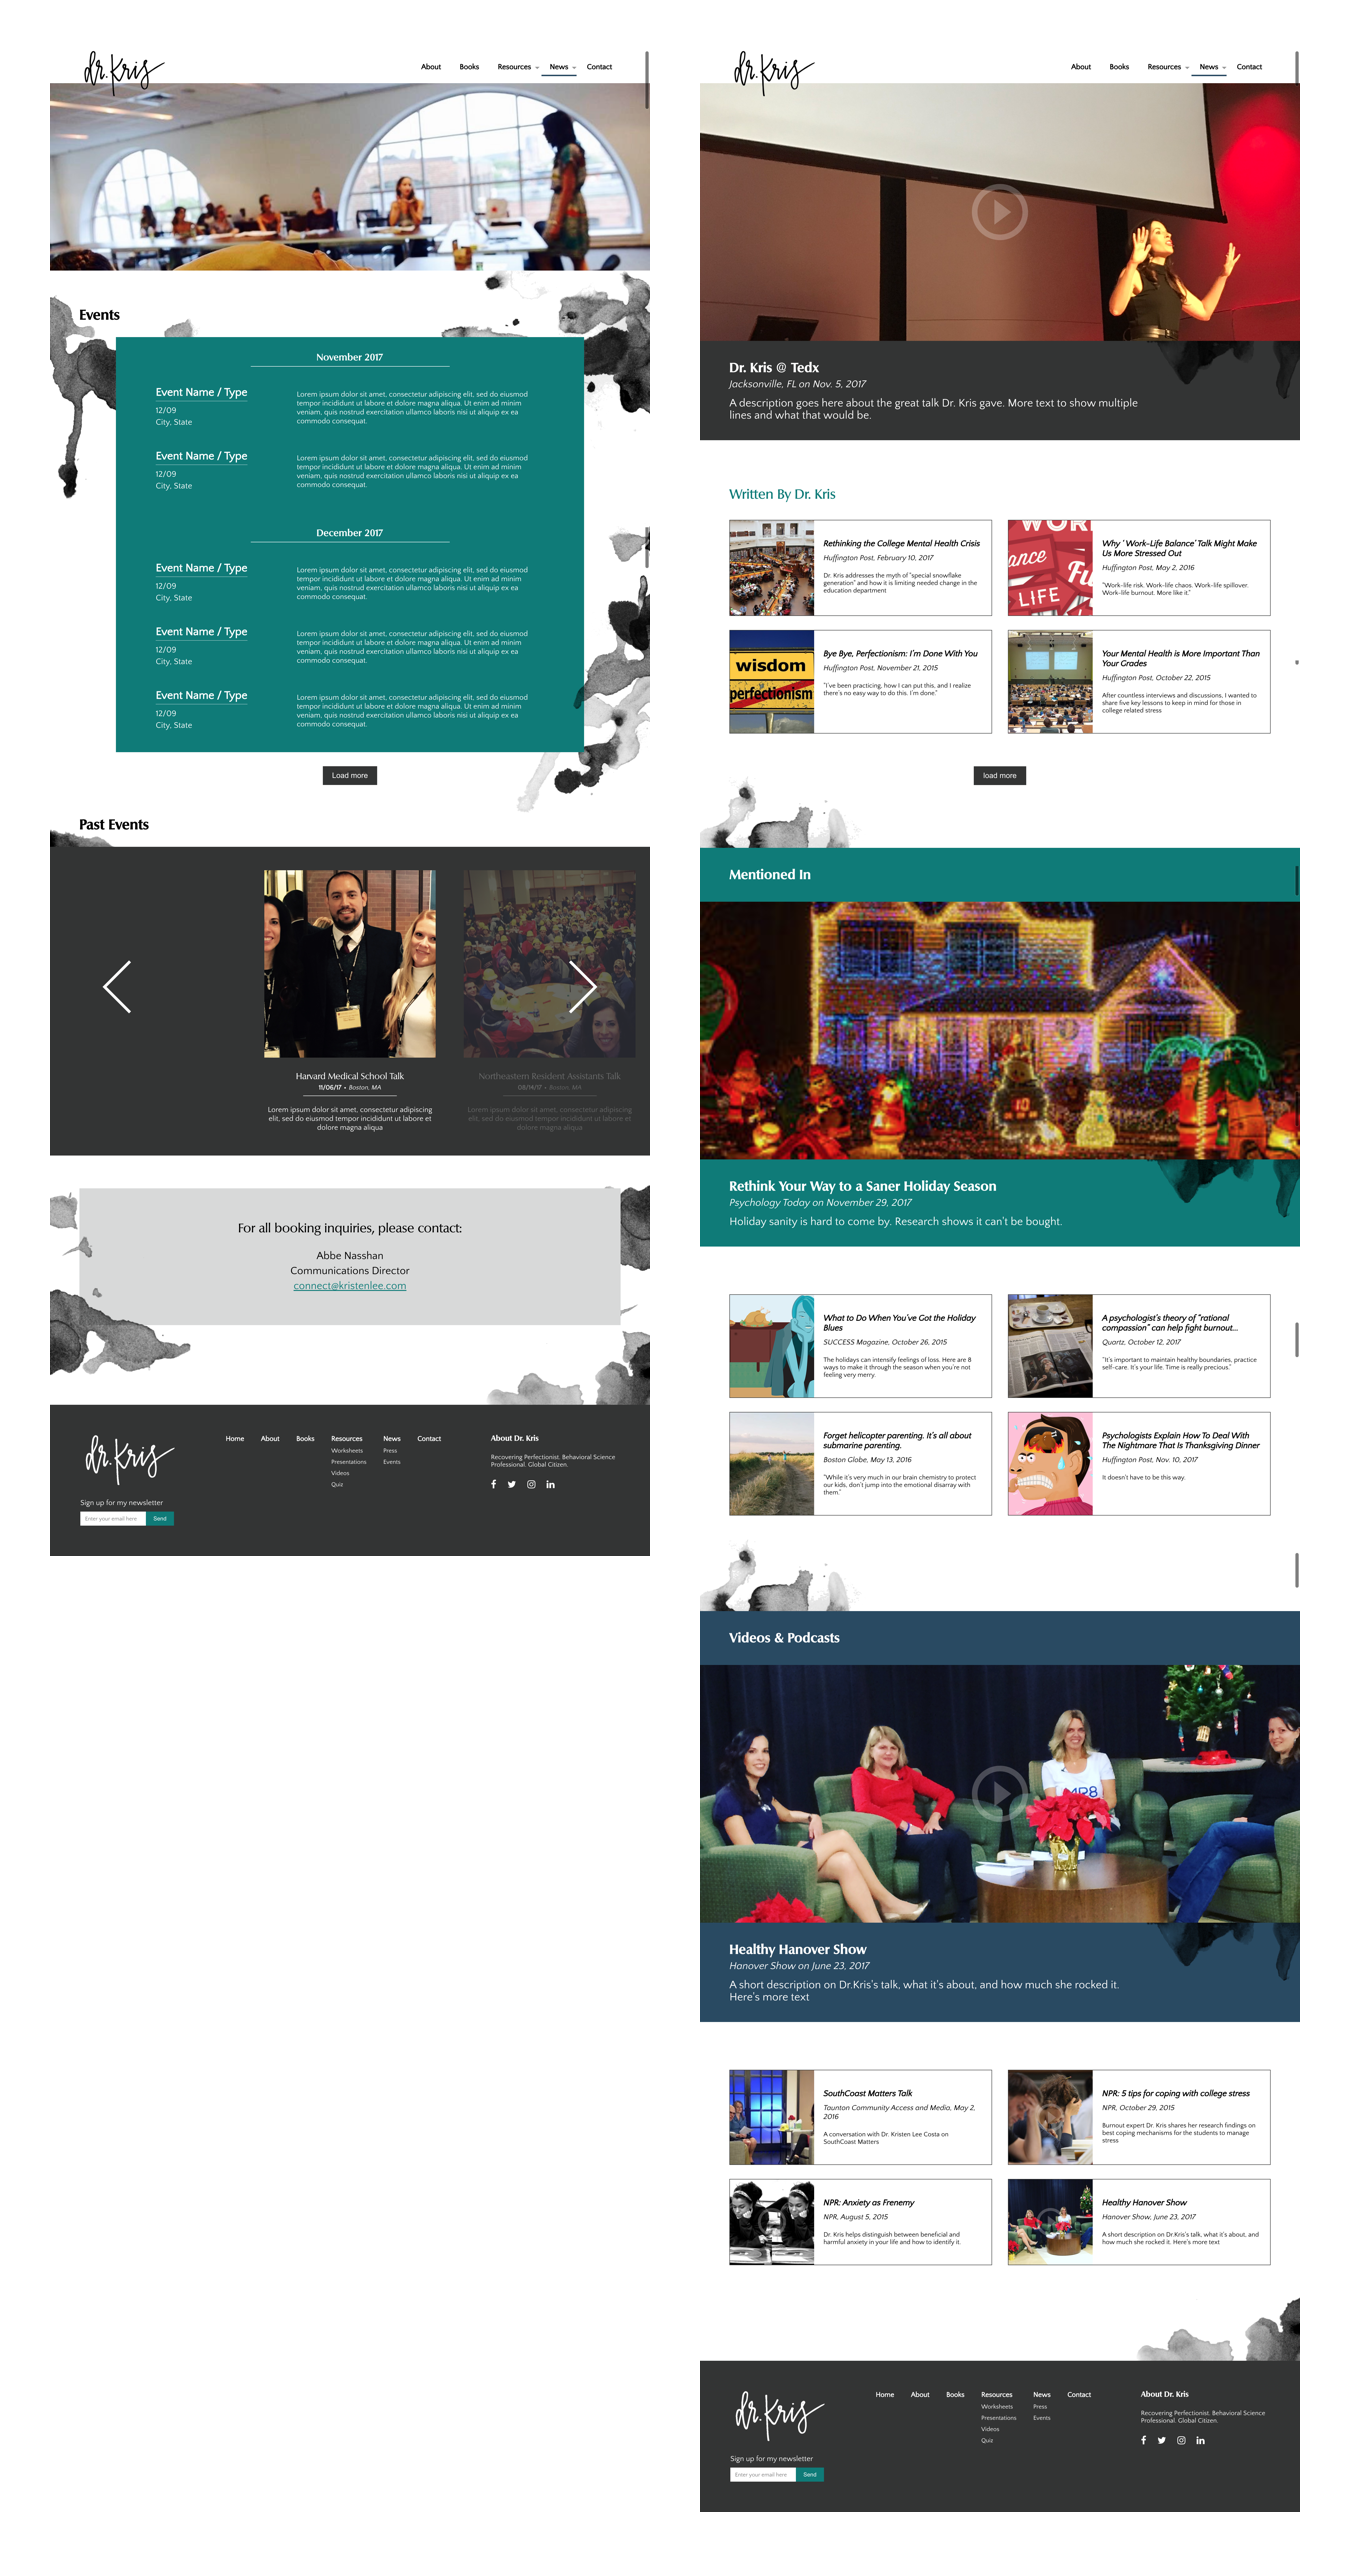 Hi-fi UI for the events and resources pages for Dr. Kris's site. Both list dynamic content the client would add herself.